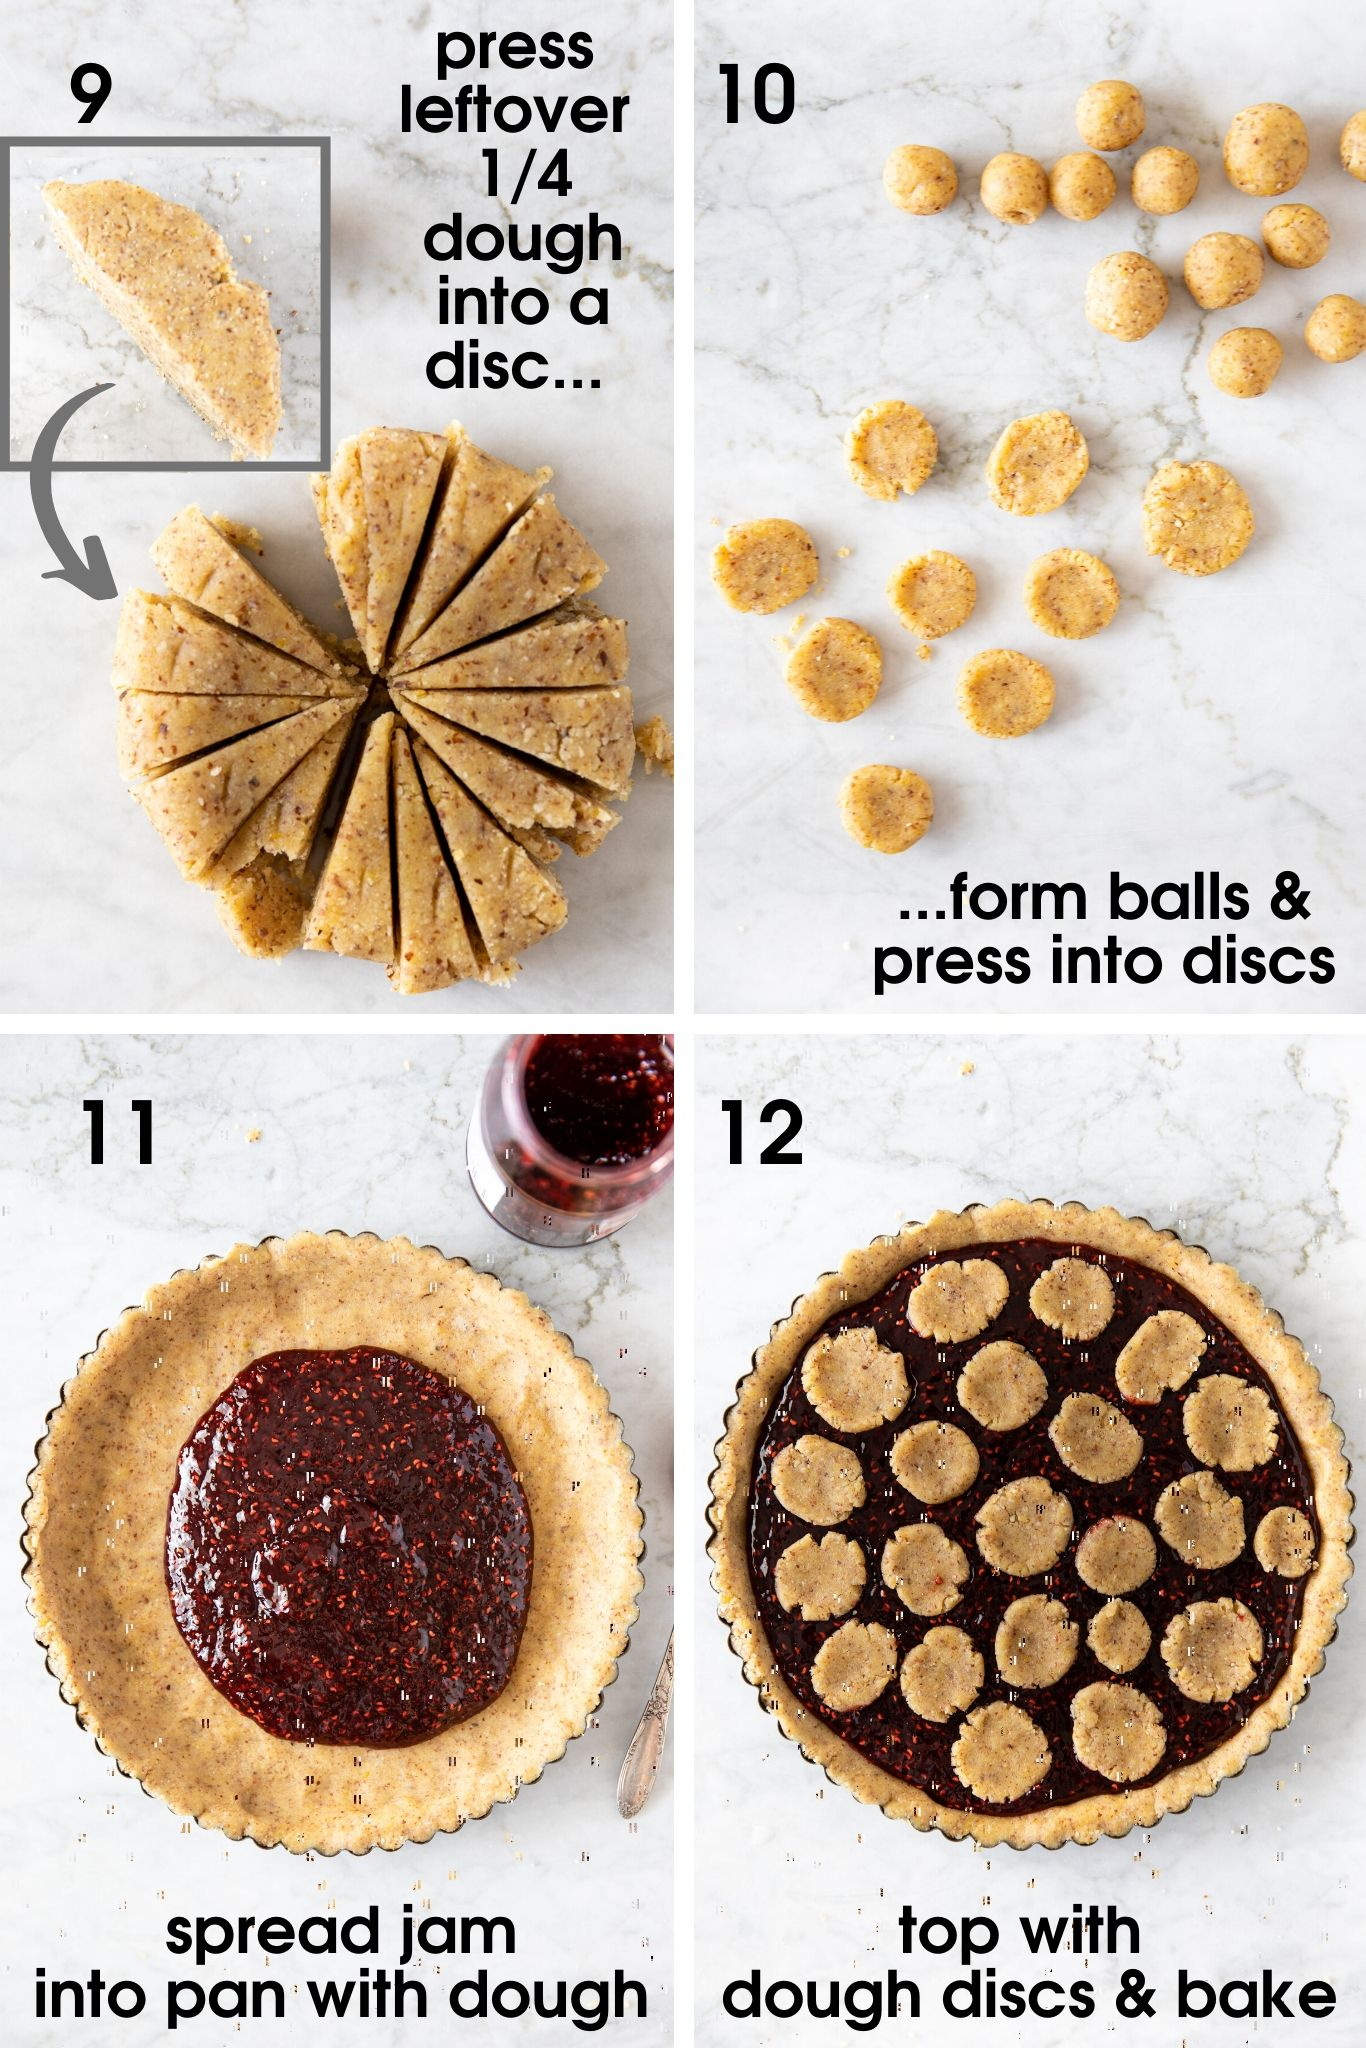 Linzer Torte with Raspberry Jam from verygoodcook.com and how to make it